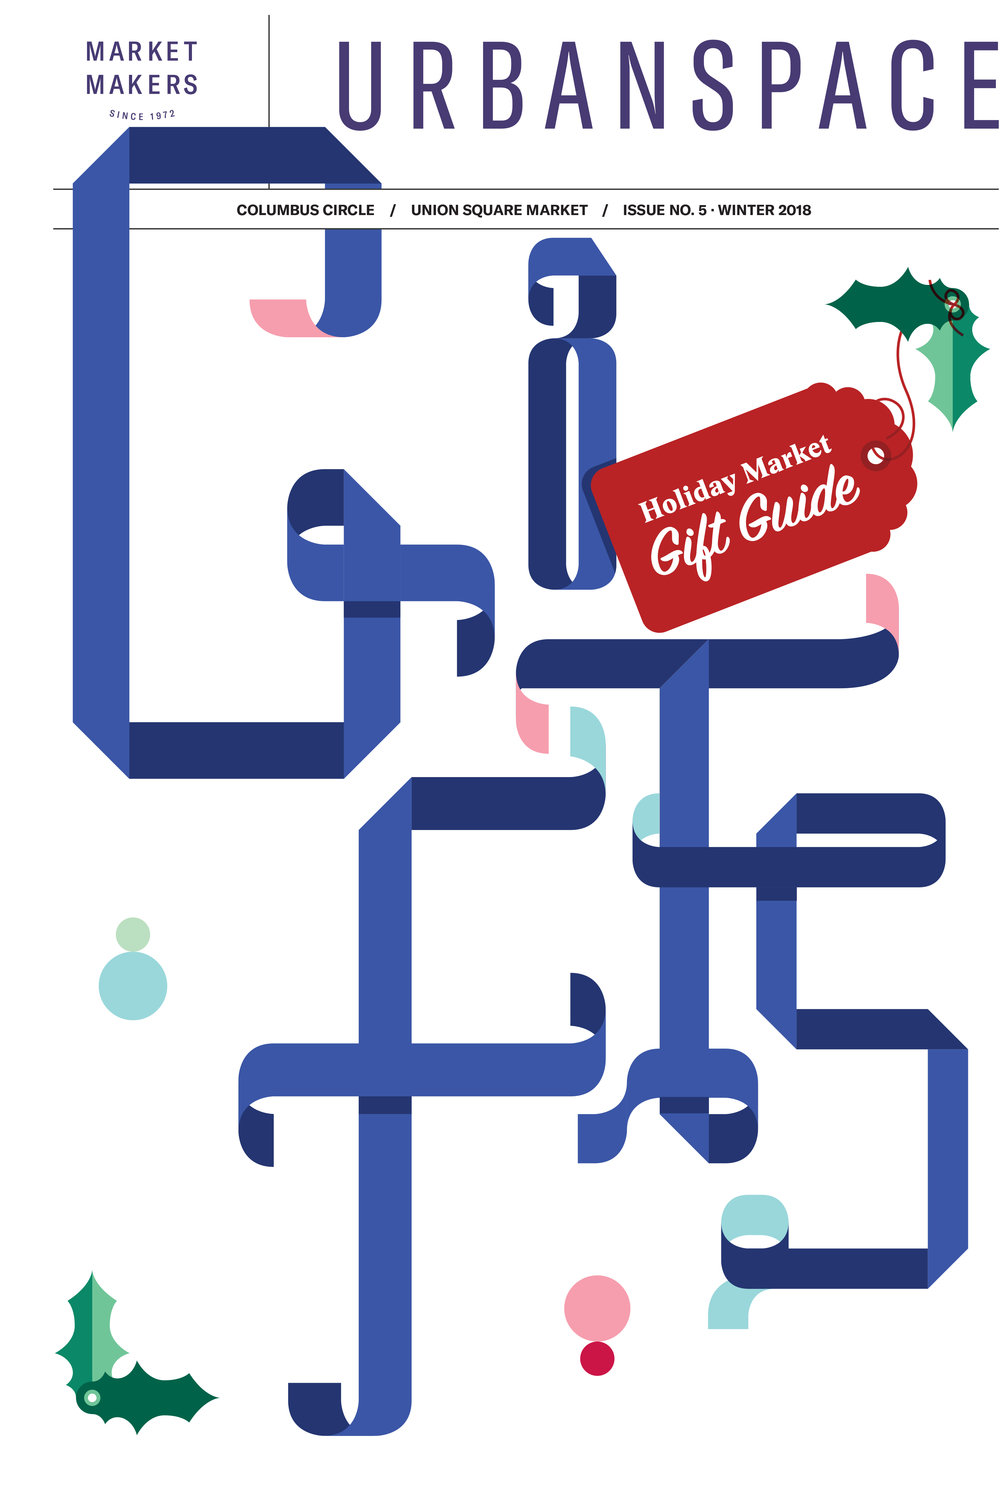 2018 Holiday Market Gift Guide 1.jpg